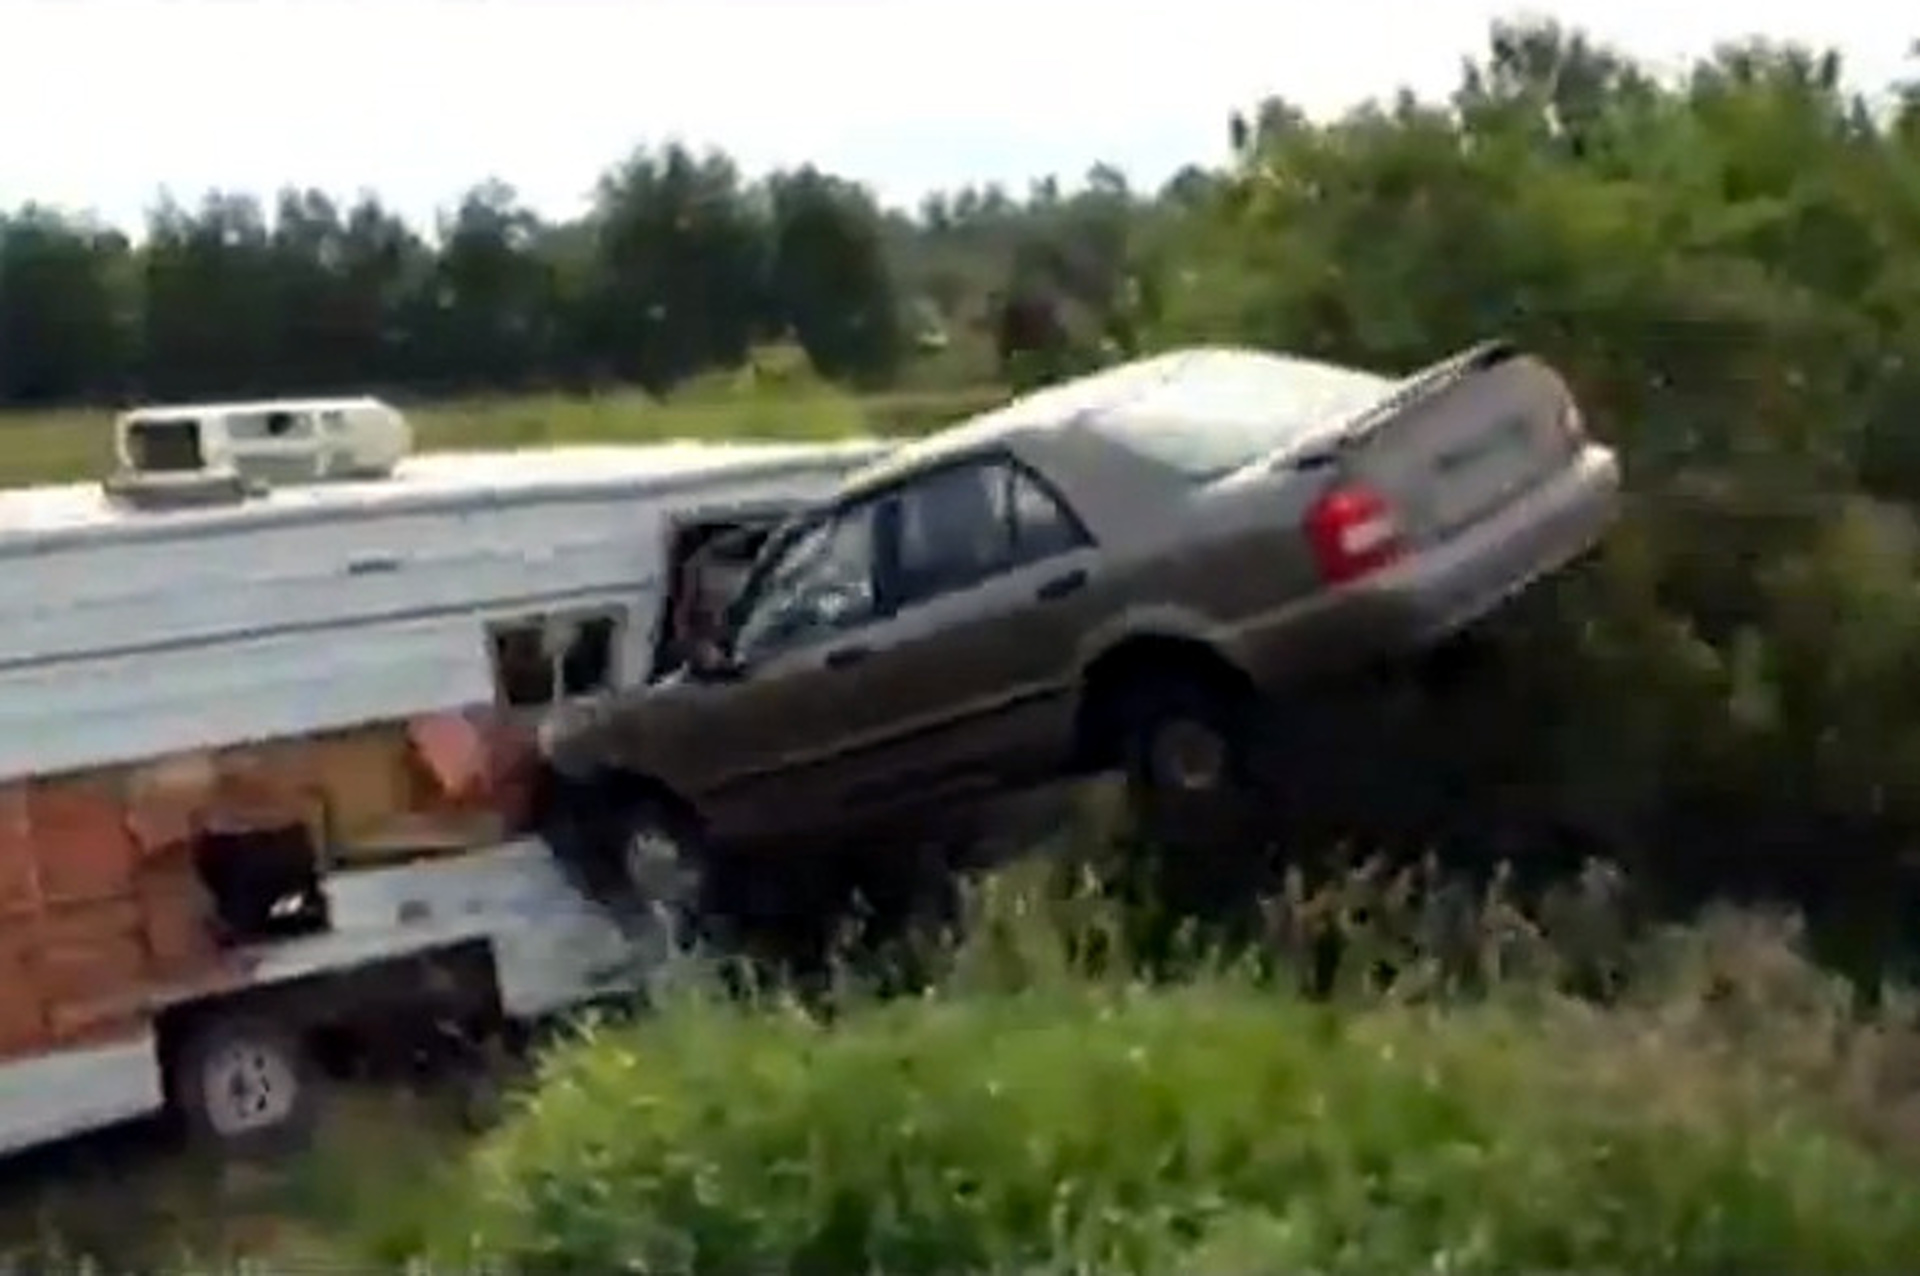 Video: Jumping Car Into an RV Proves Canadian Rednecks Do Exist